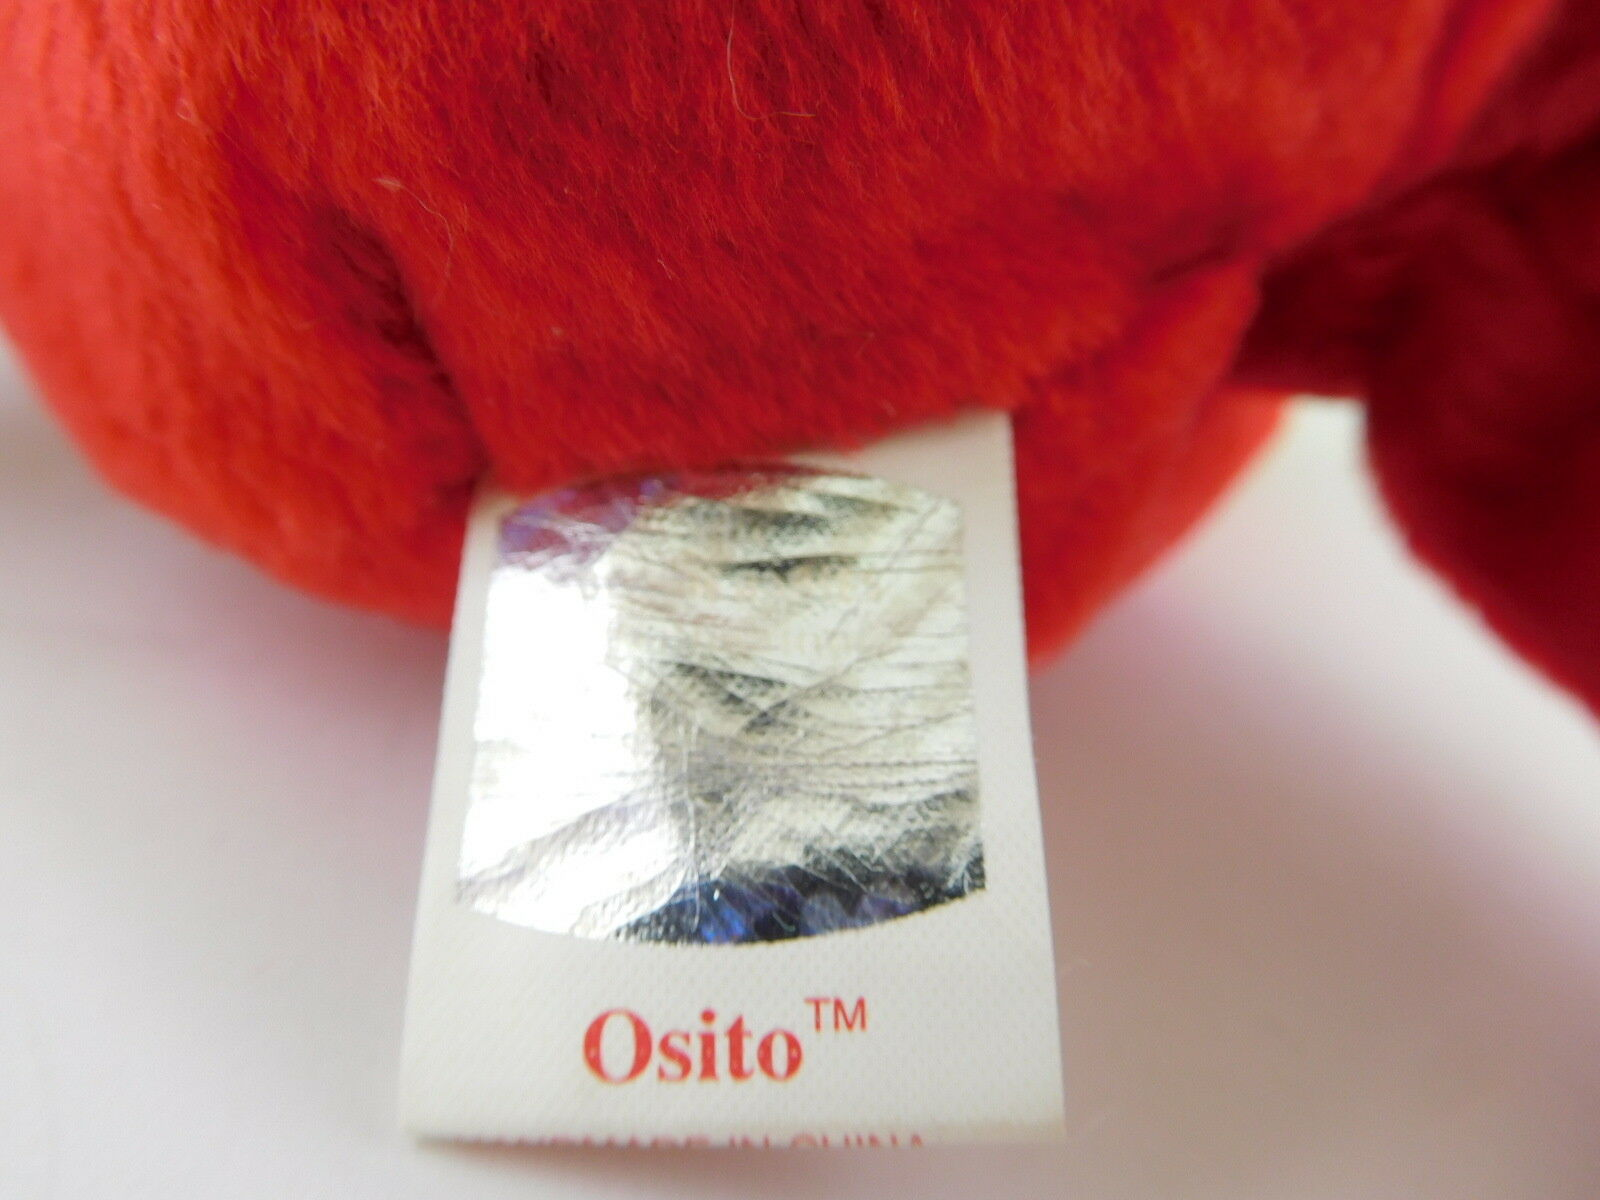 Very Rare Osito Ty Beanie Beanie Beanie Baby High End Due to 'Errors' on Tags New with Tags 3fa500